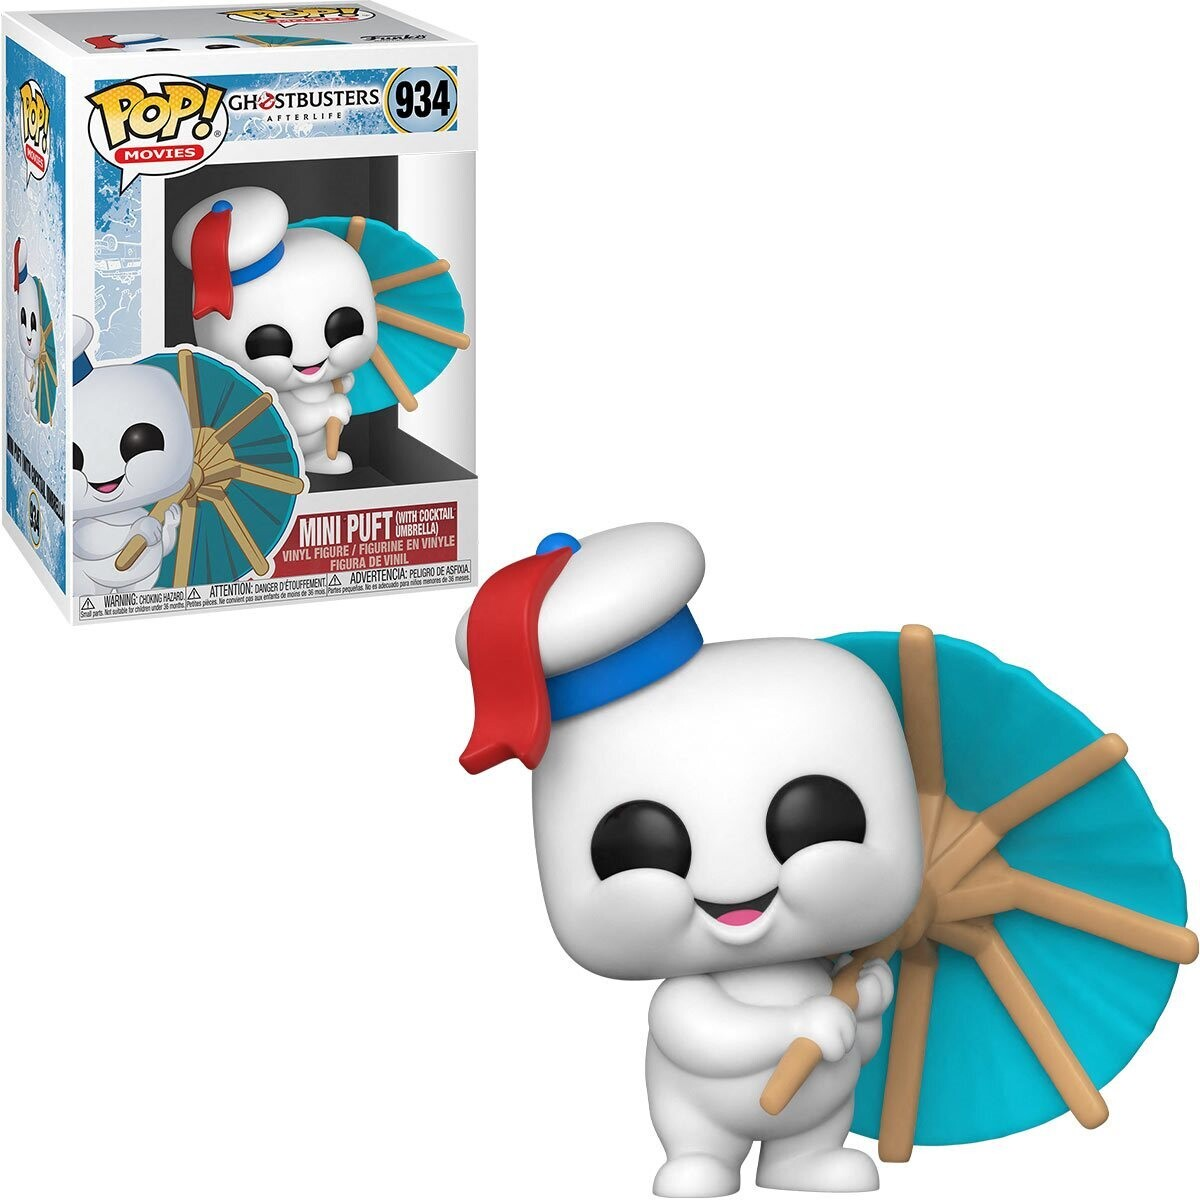 PRE-ORDER Funko Ghostbusters 3: Afterlife Mini Puft with Cocktail Umbrella Pop! Vinyl Figure